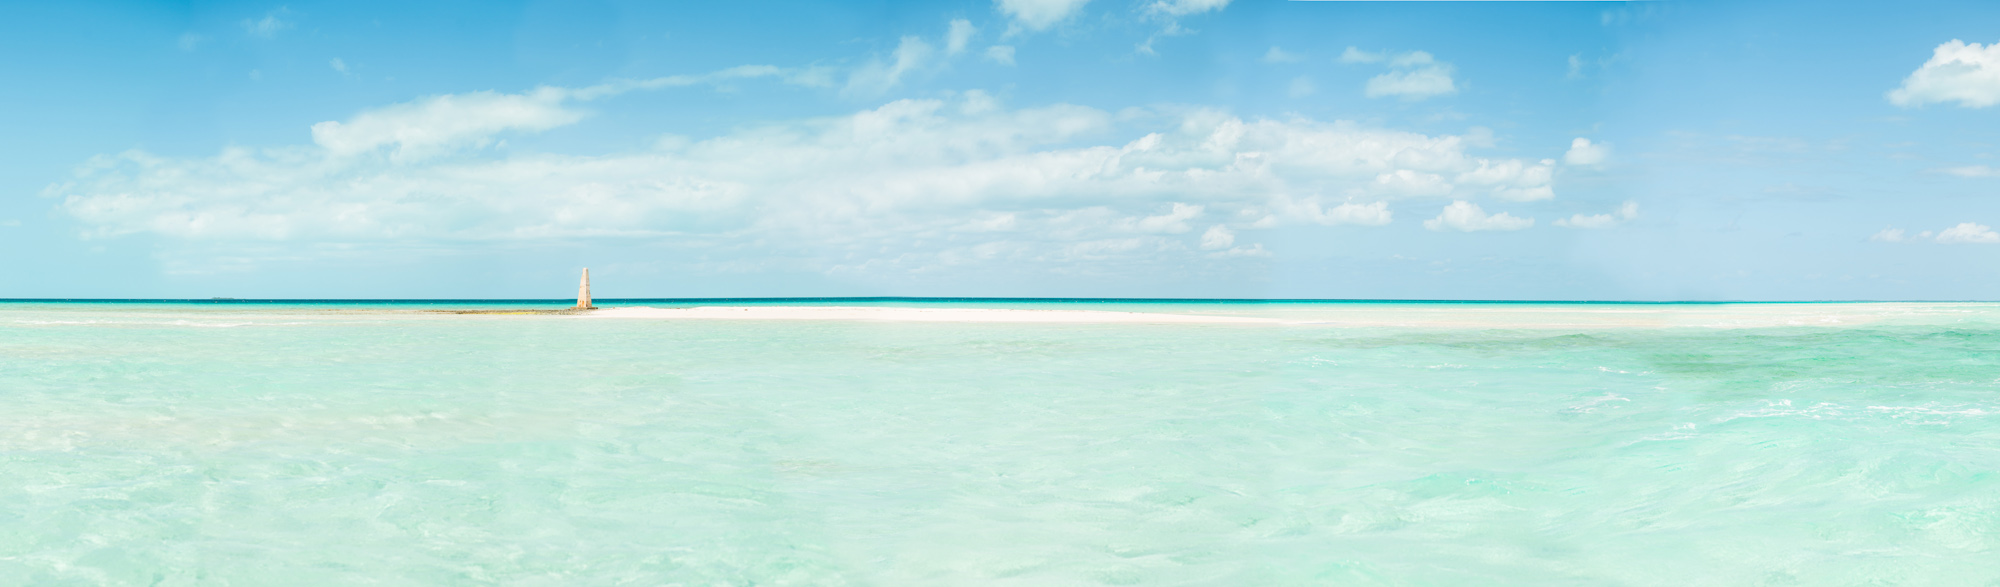 Bahama Banks Sandbar Monument - Eleuthera, The Bahamas